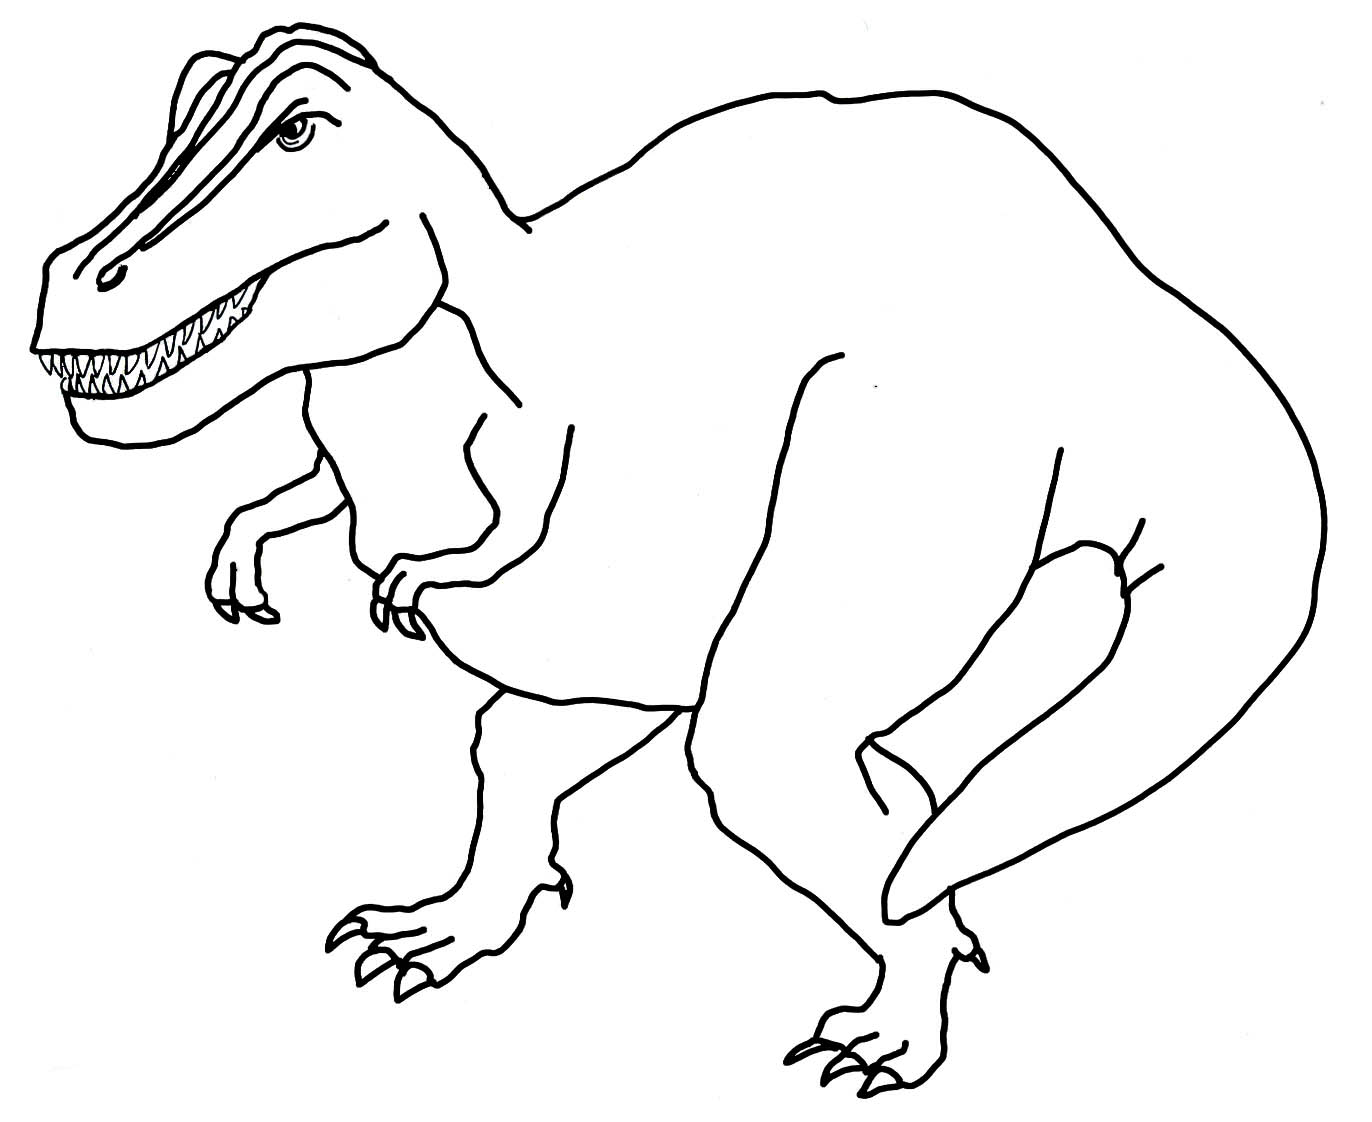 Scary dinosaur coloring pages Scary dinosaurs colouring pages ... | 1122x1372